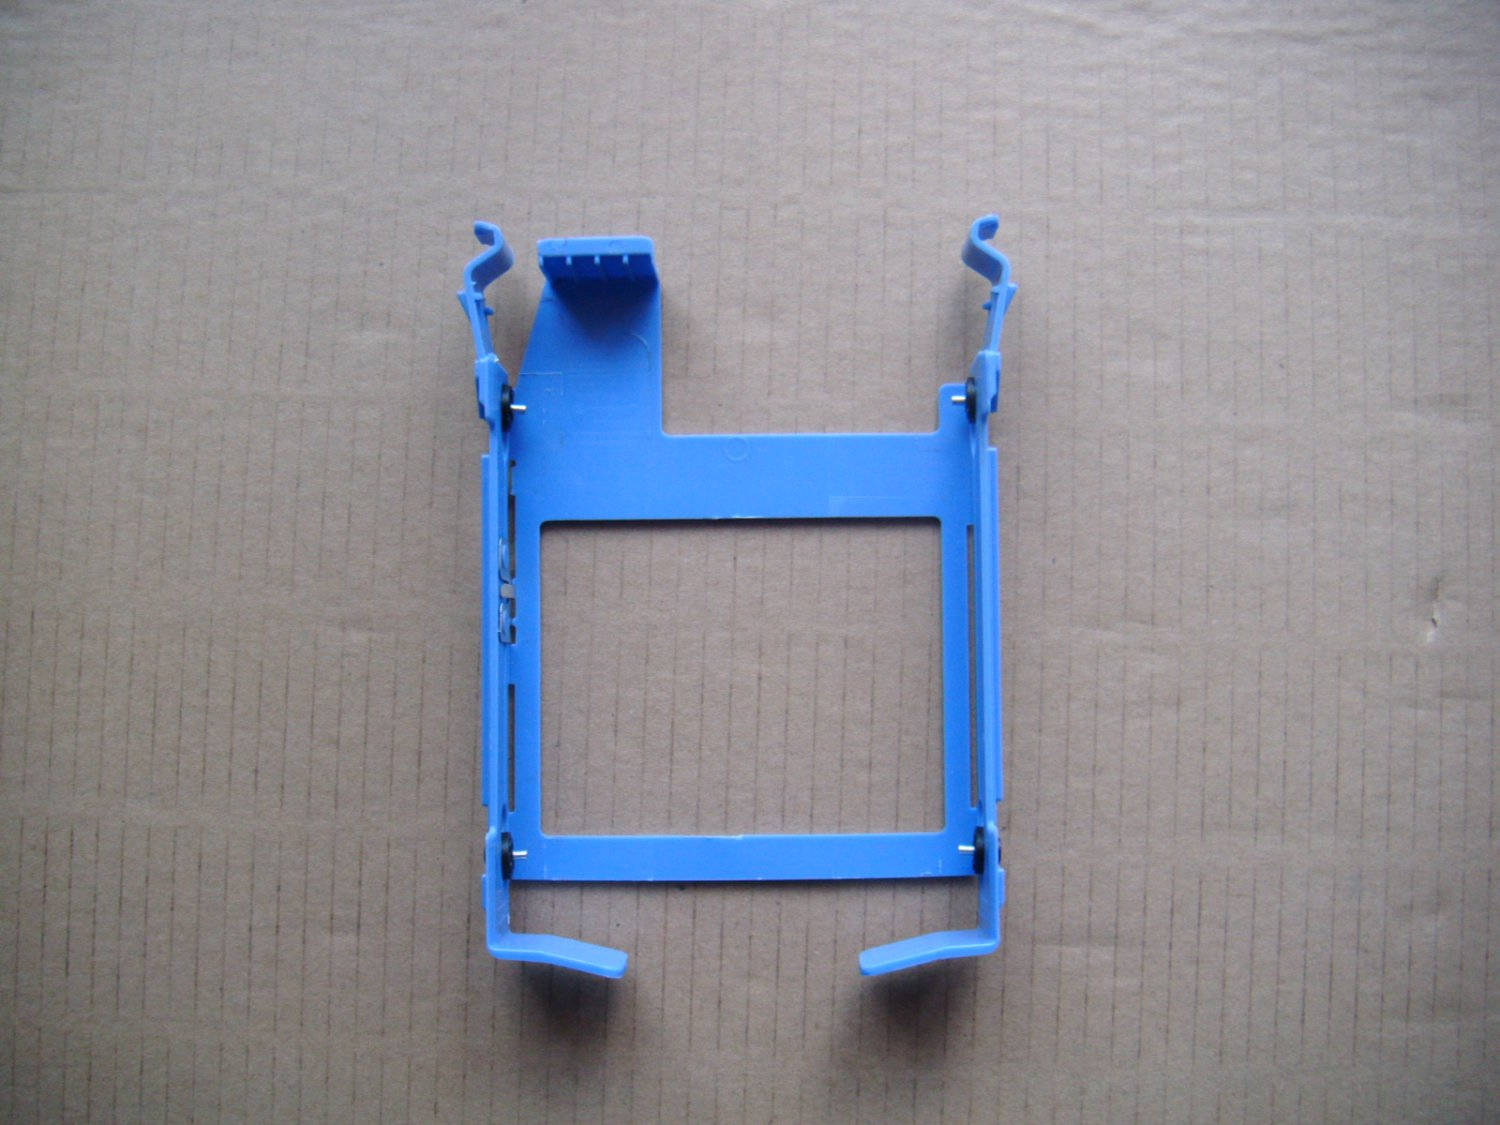 Dell T1600 T1650 T20 T1700 T3610 T5610 2.5 3.5 HDD Hard Drive Caddy Bracket 1B31D2600 px60023 dn8my